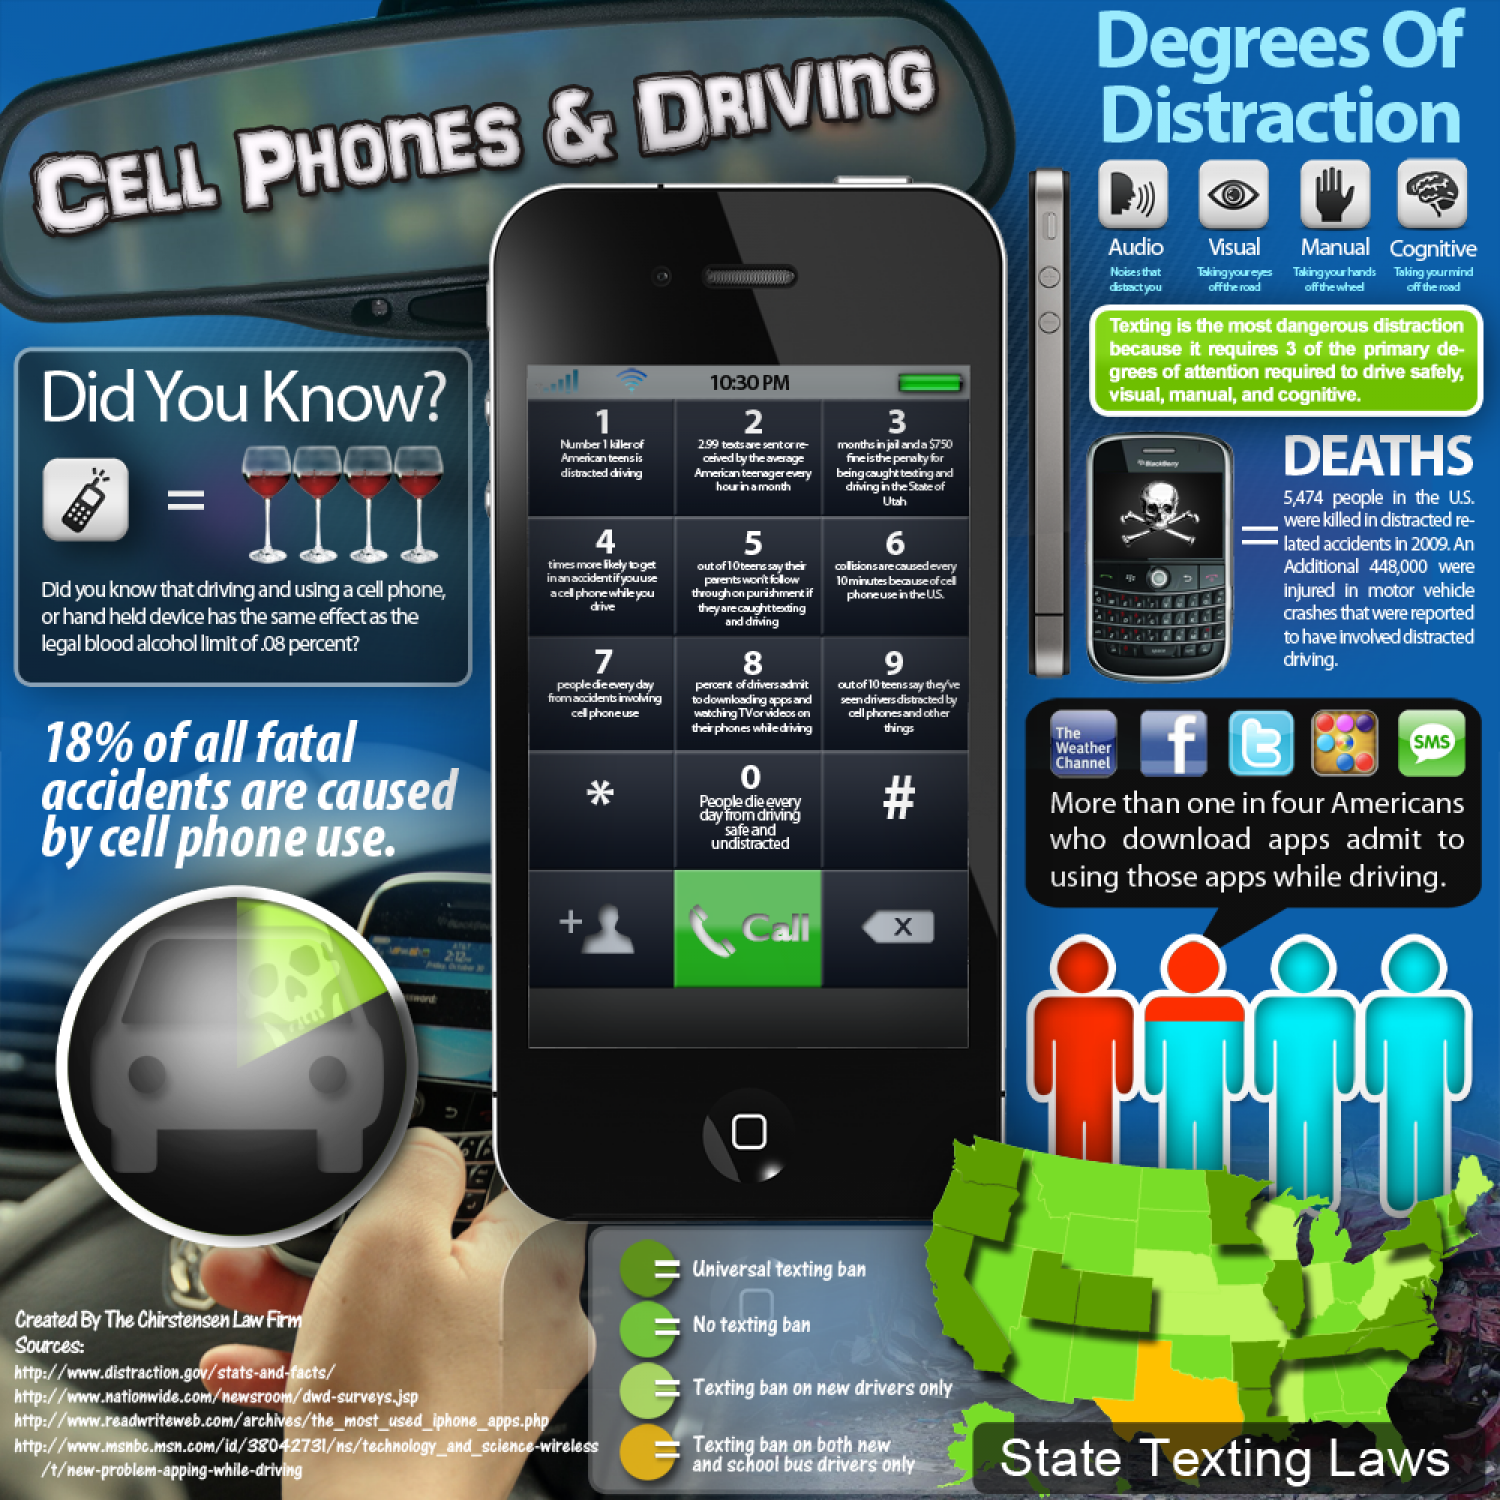 Cell Phones & Driving Infographic